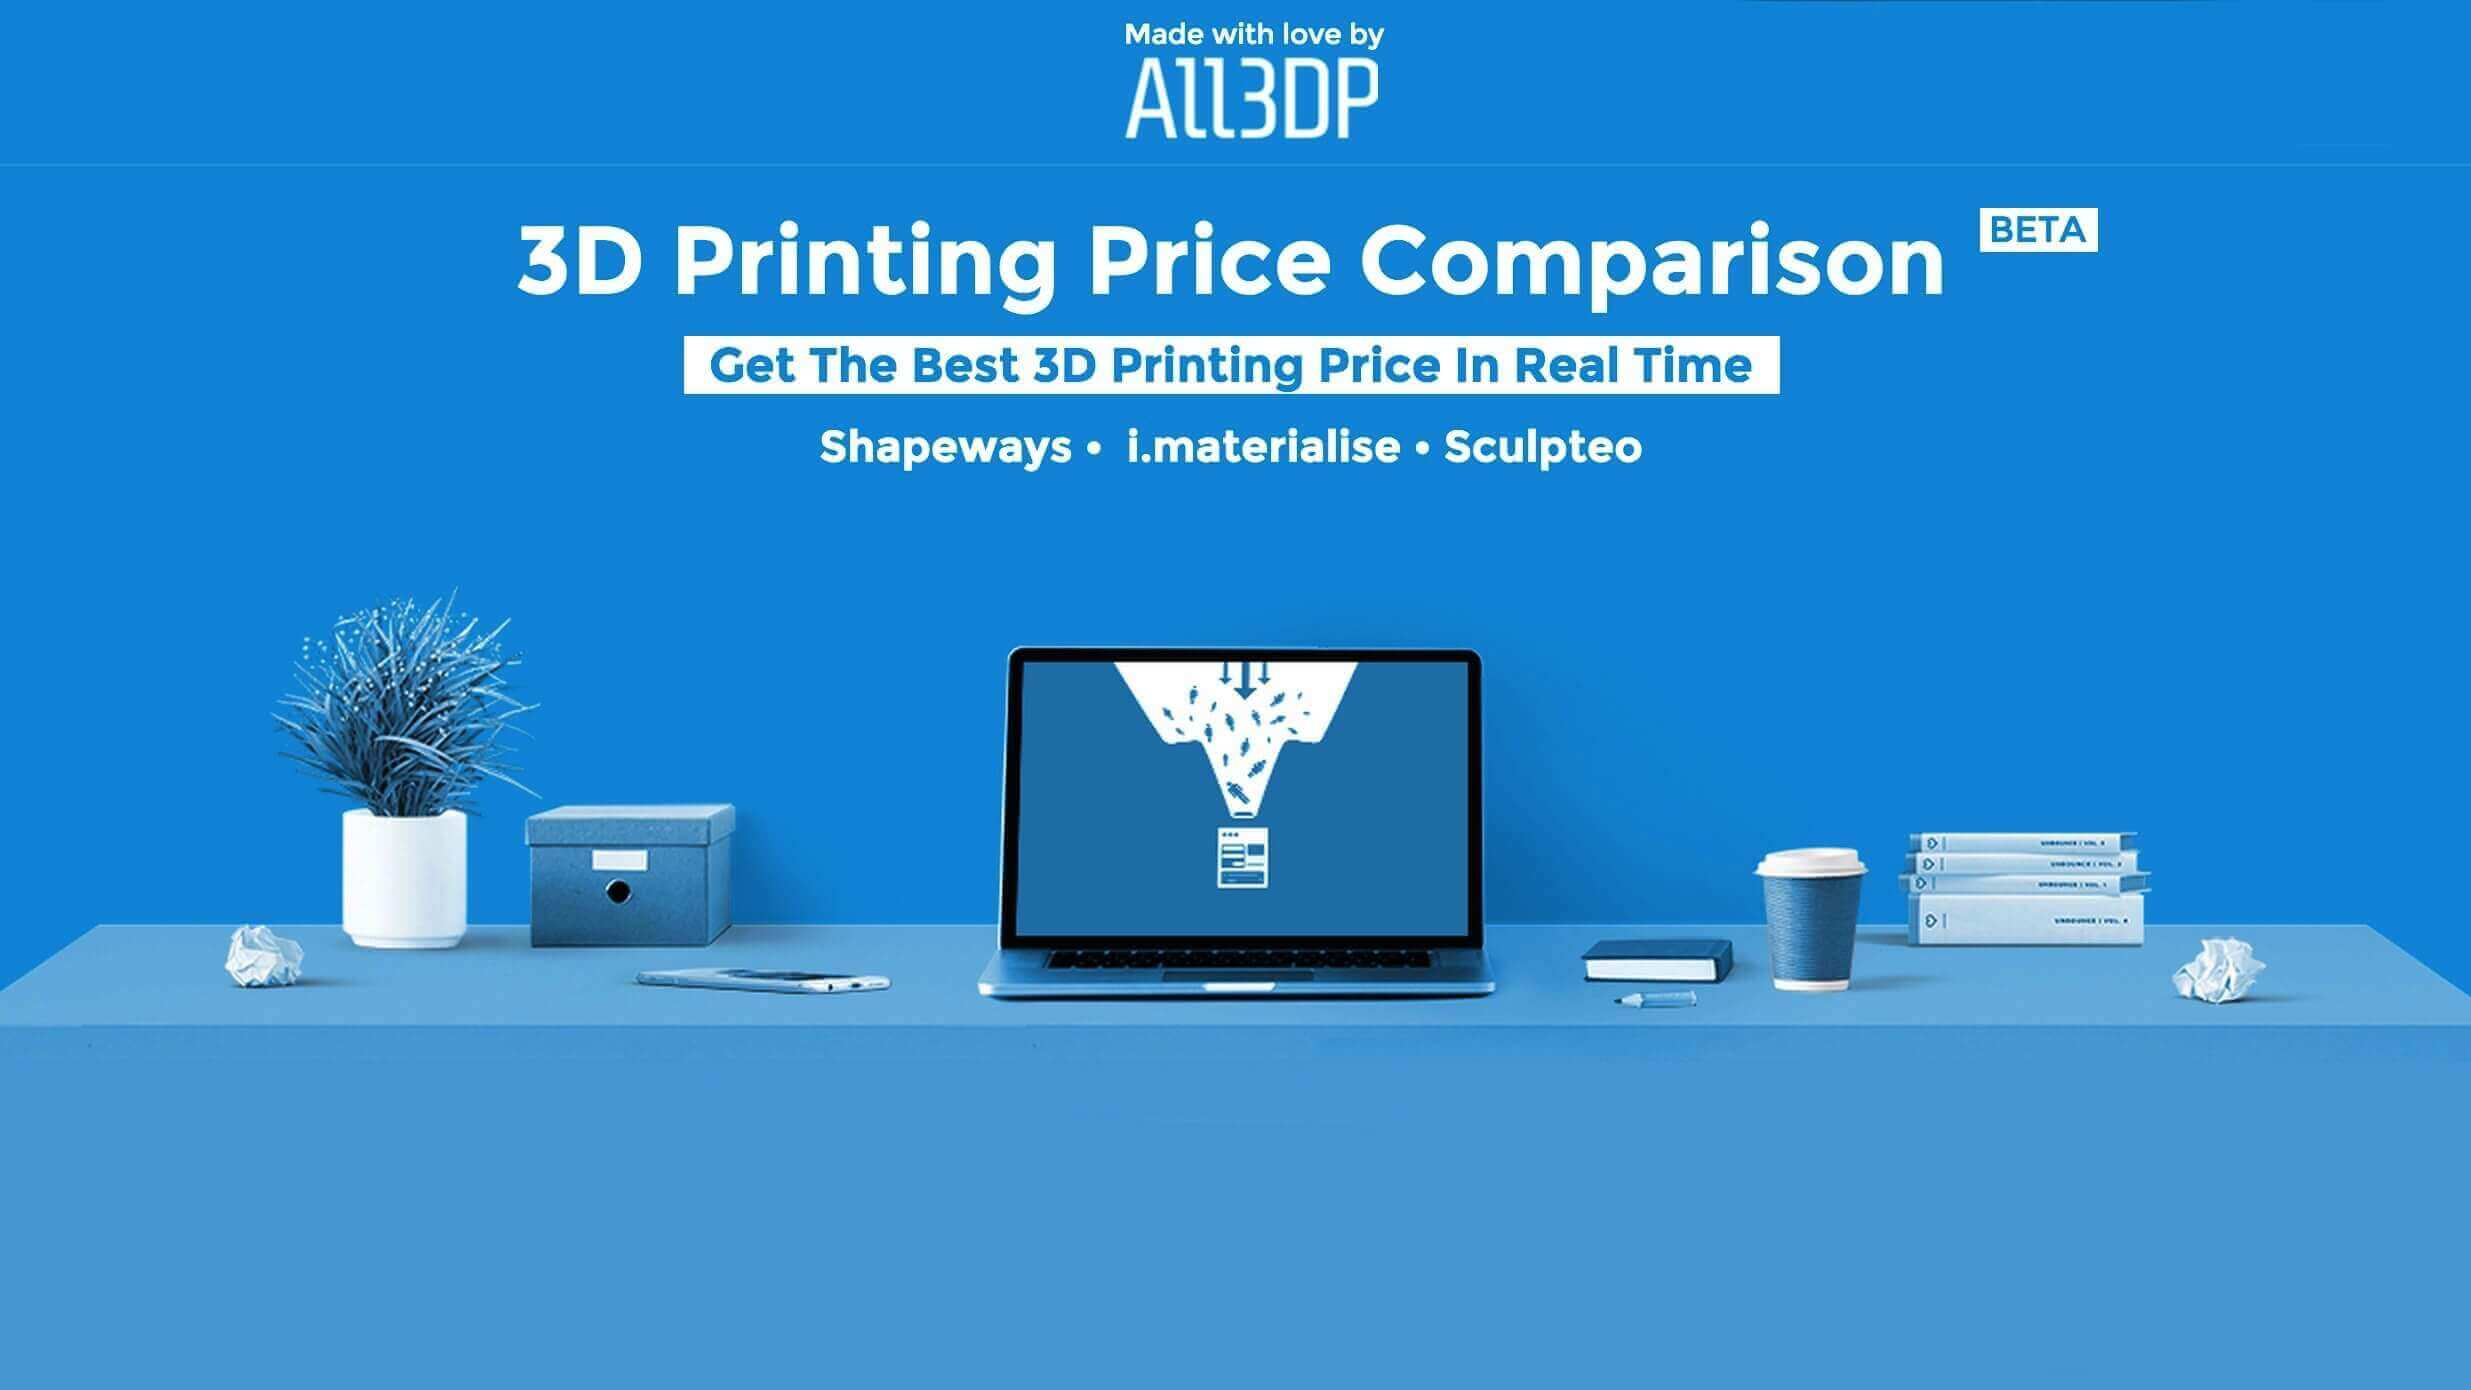 New 3D Printing Price Comparison Service Launched | All3DP